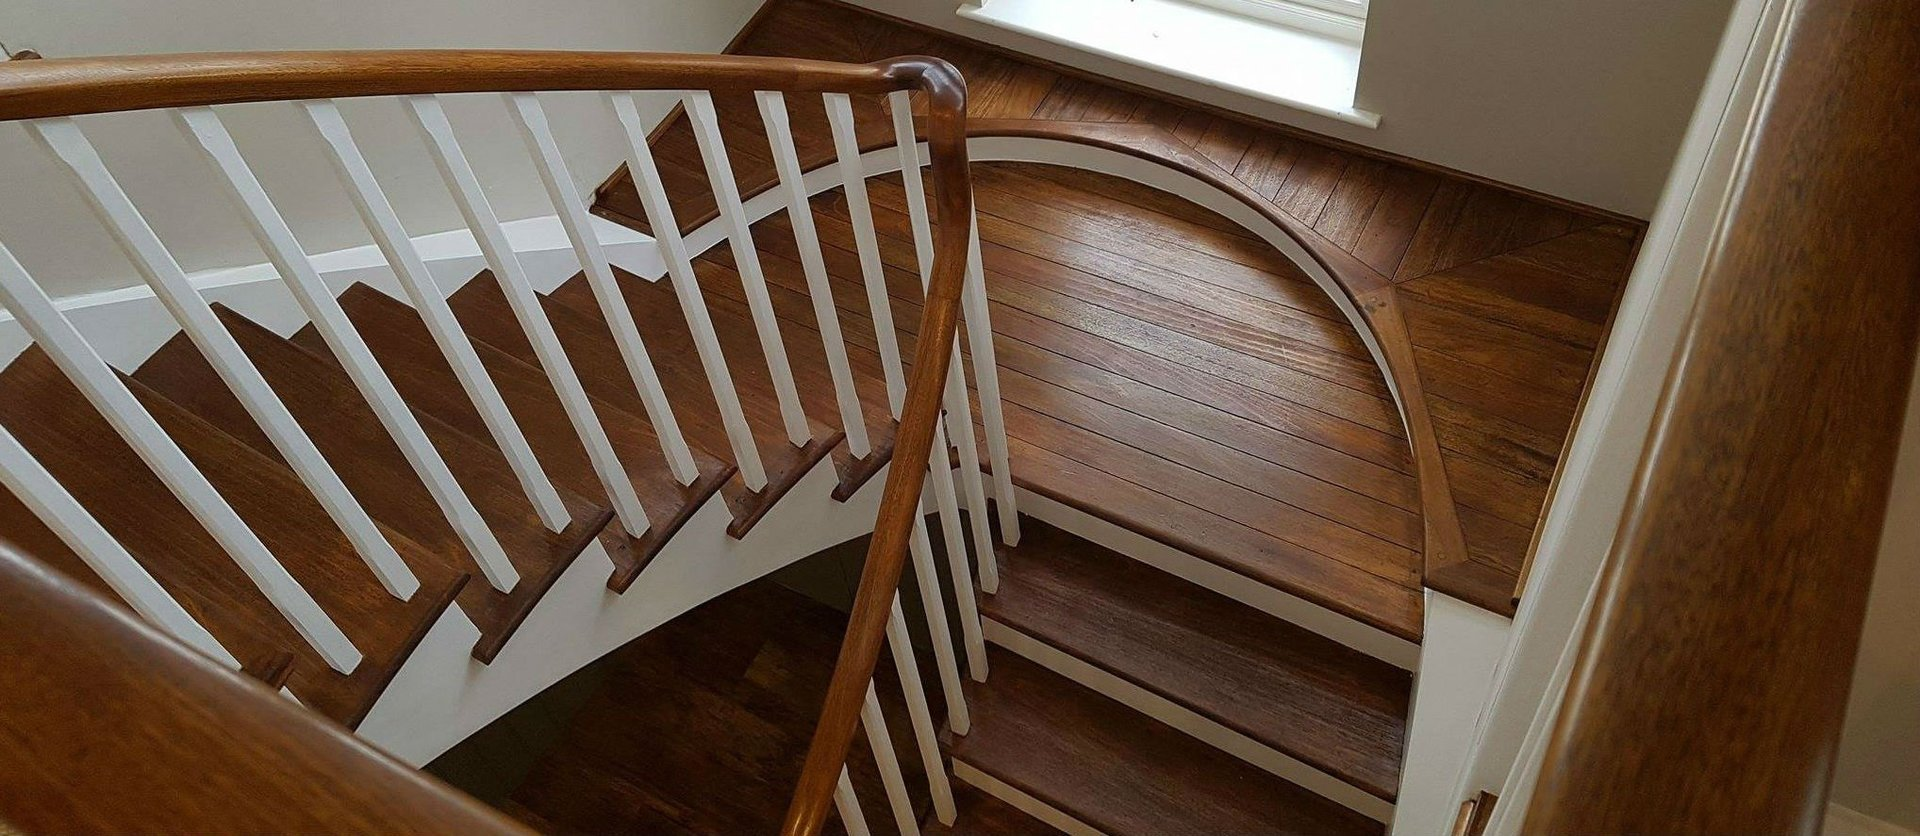 New Home Staircase Design